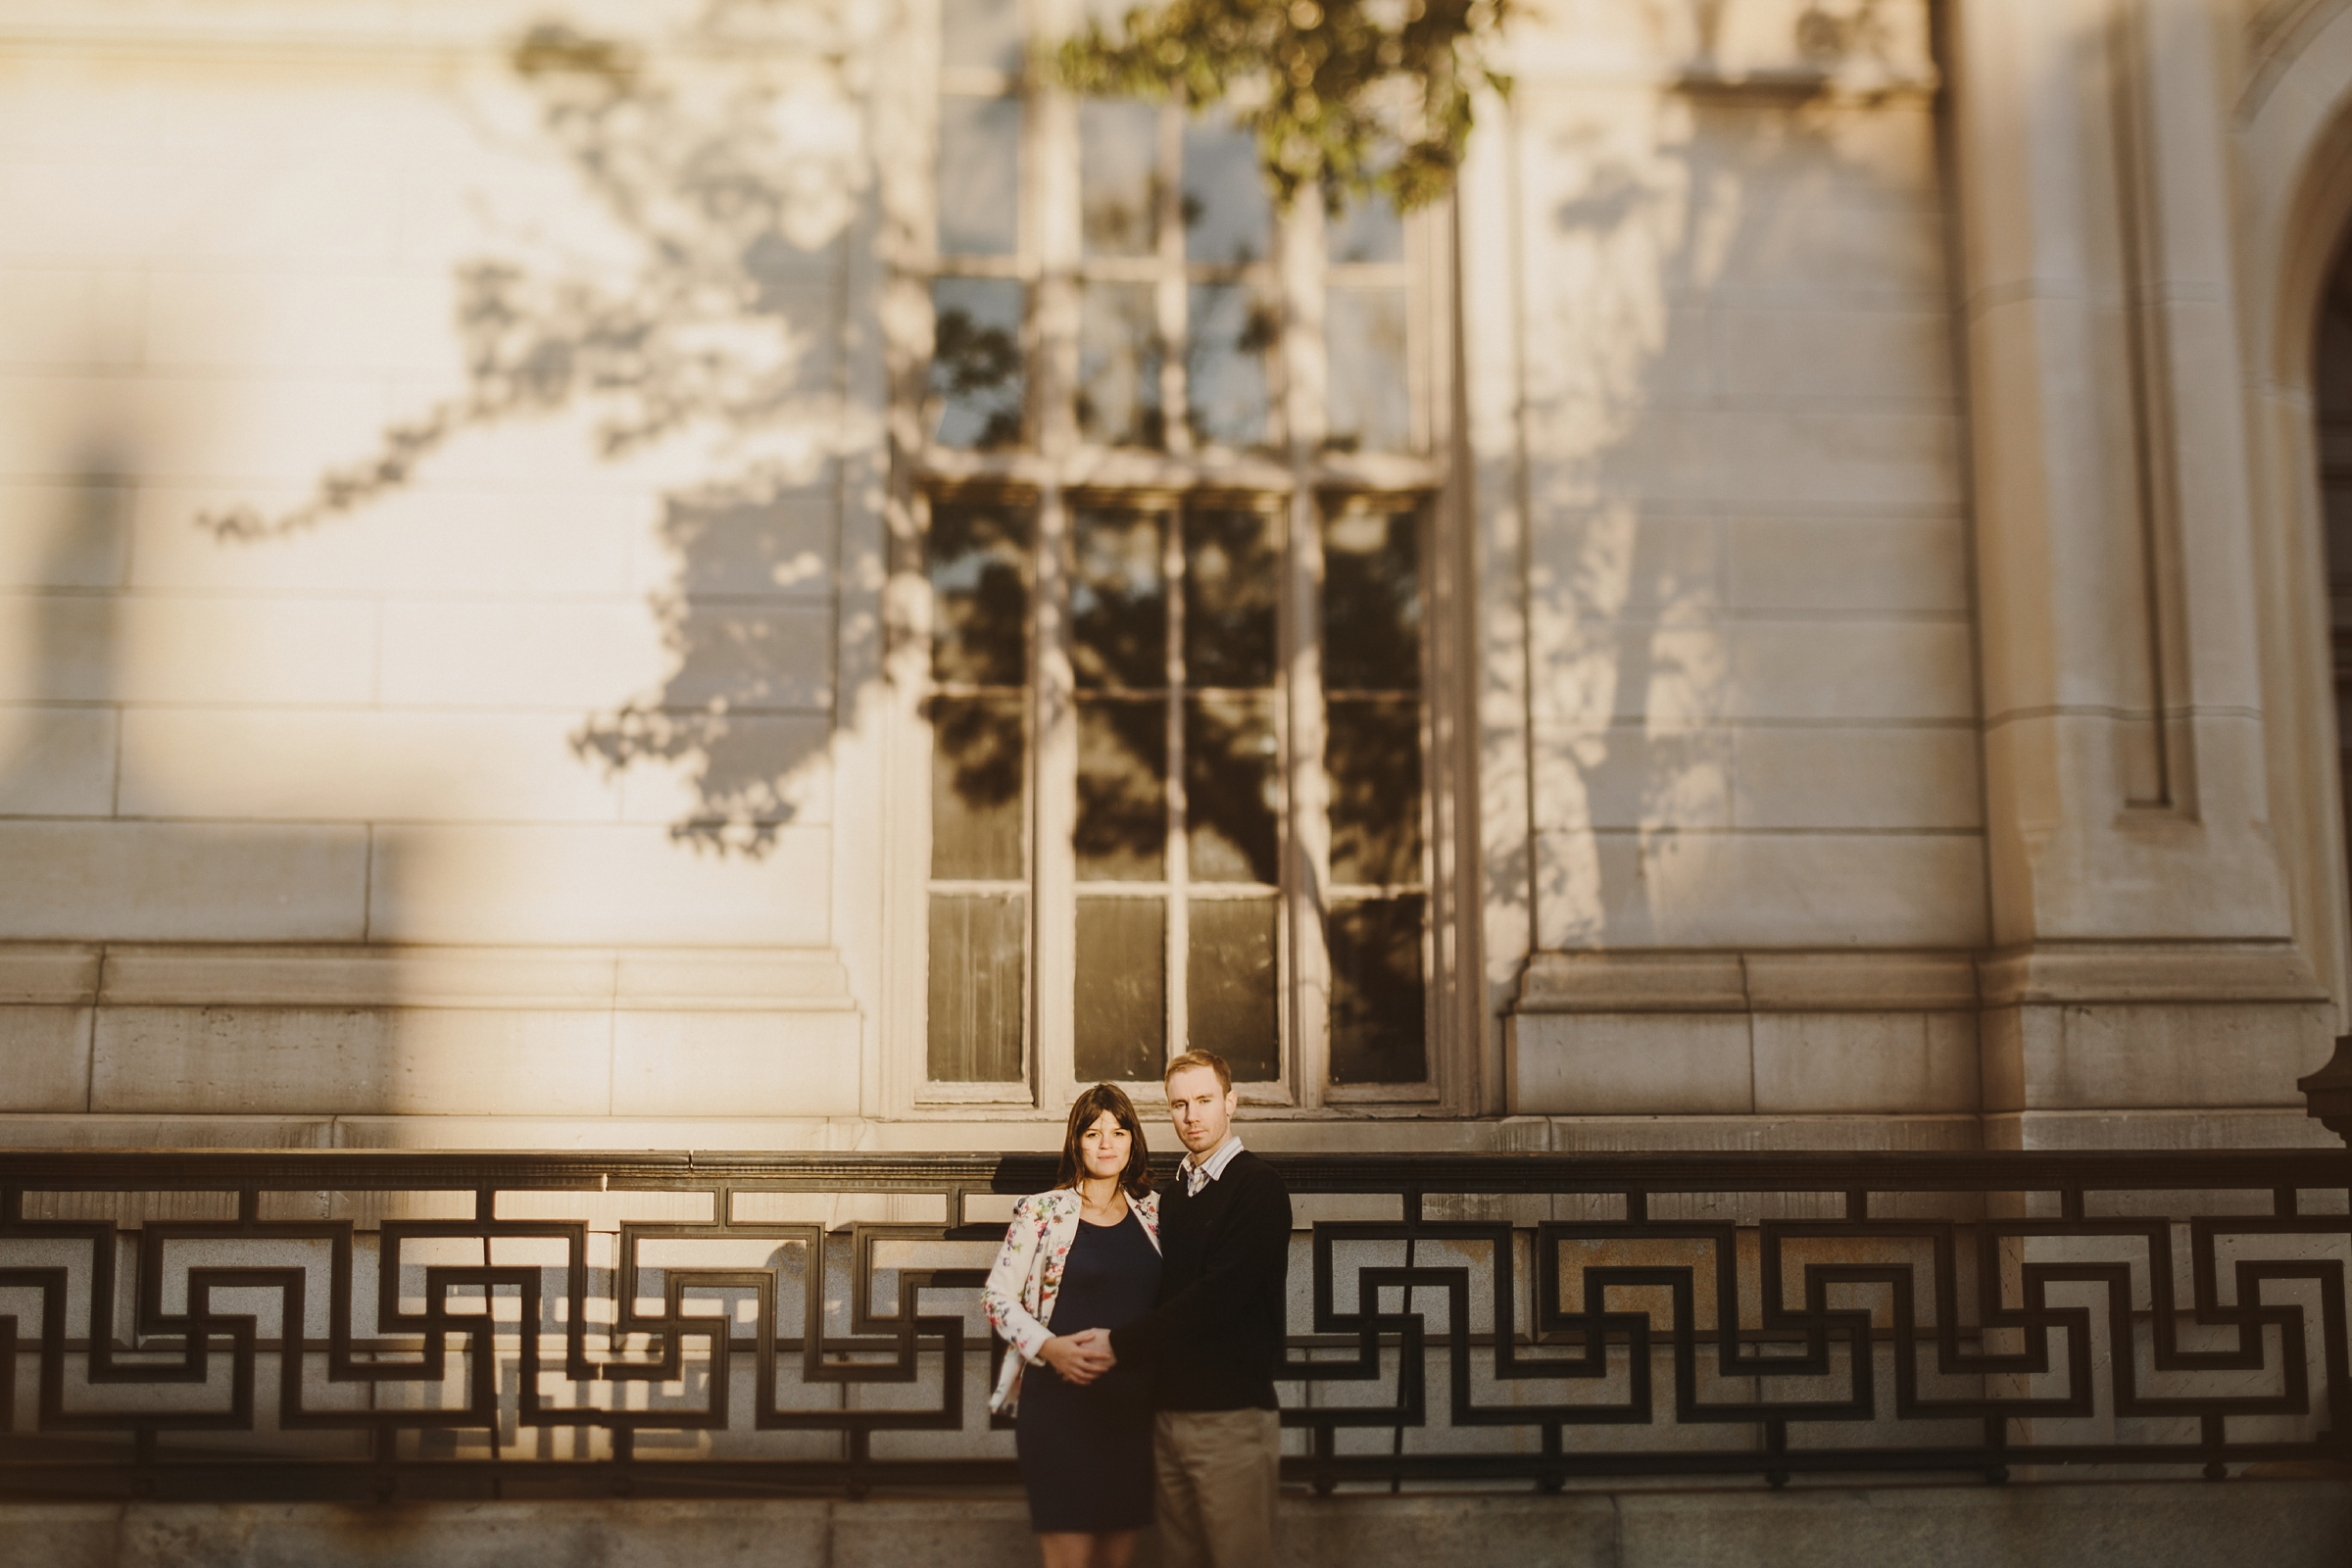 Baltimore_Maternity_Sunset_Portrait_Session_by_Maryland_Wedding_Photographer_Kate_Ann_Photography_photo_0863